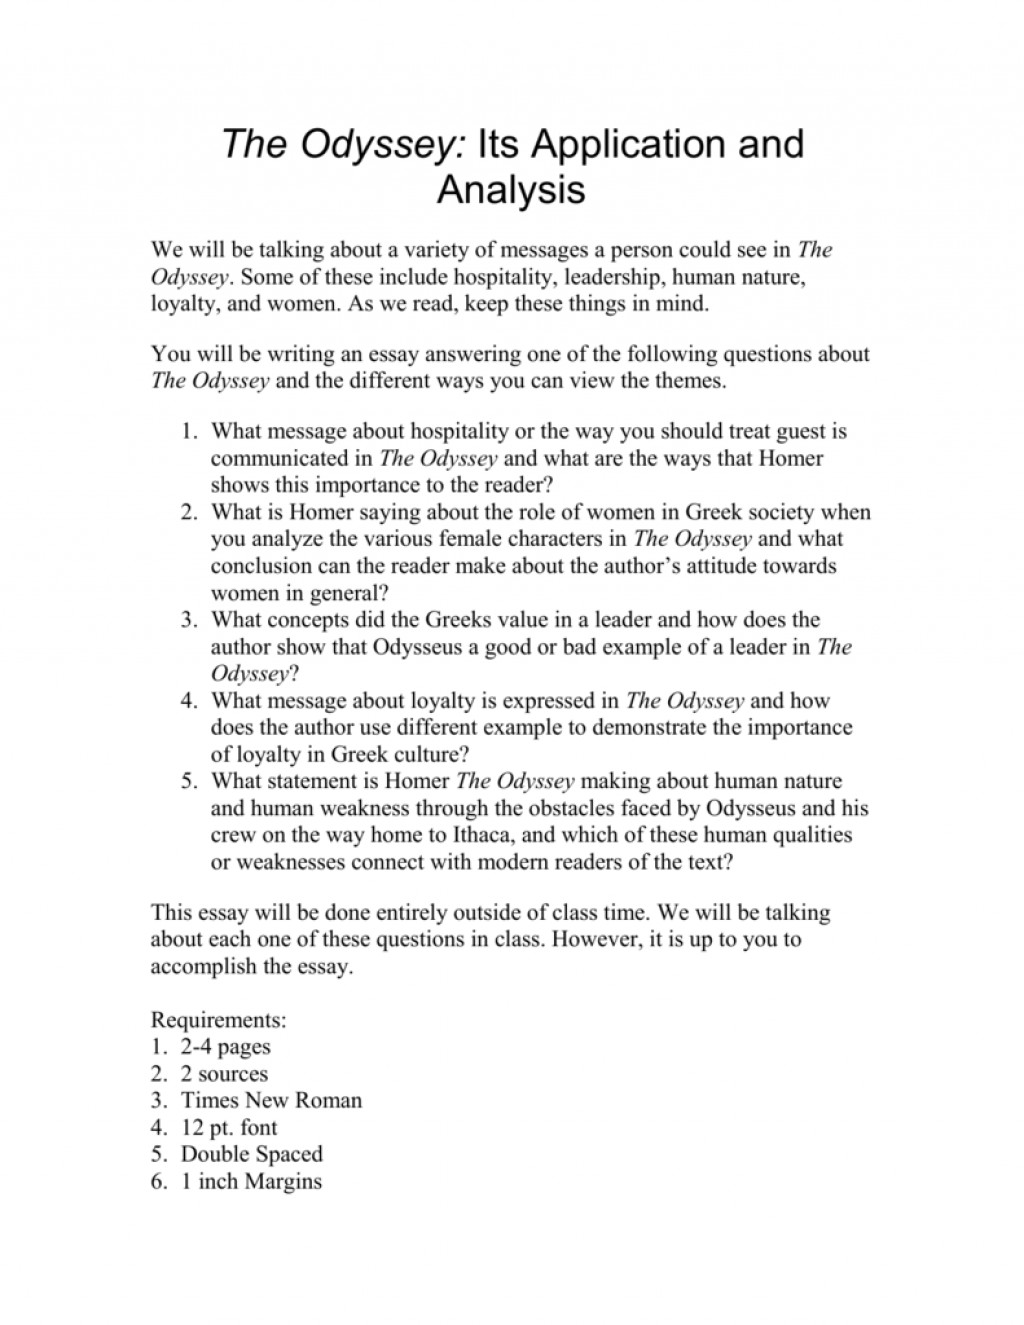 009 Essay Example Odyssey Topics 008004991 1 Amazing Prompt Prompts Large